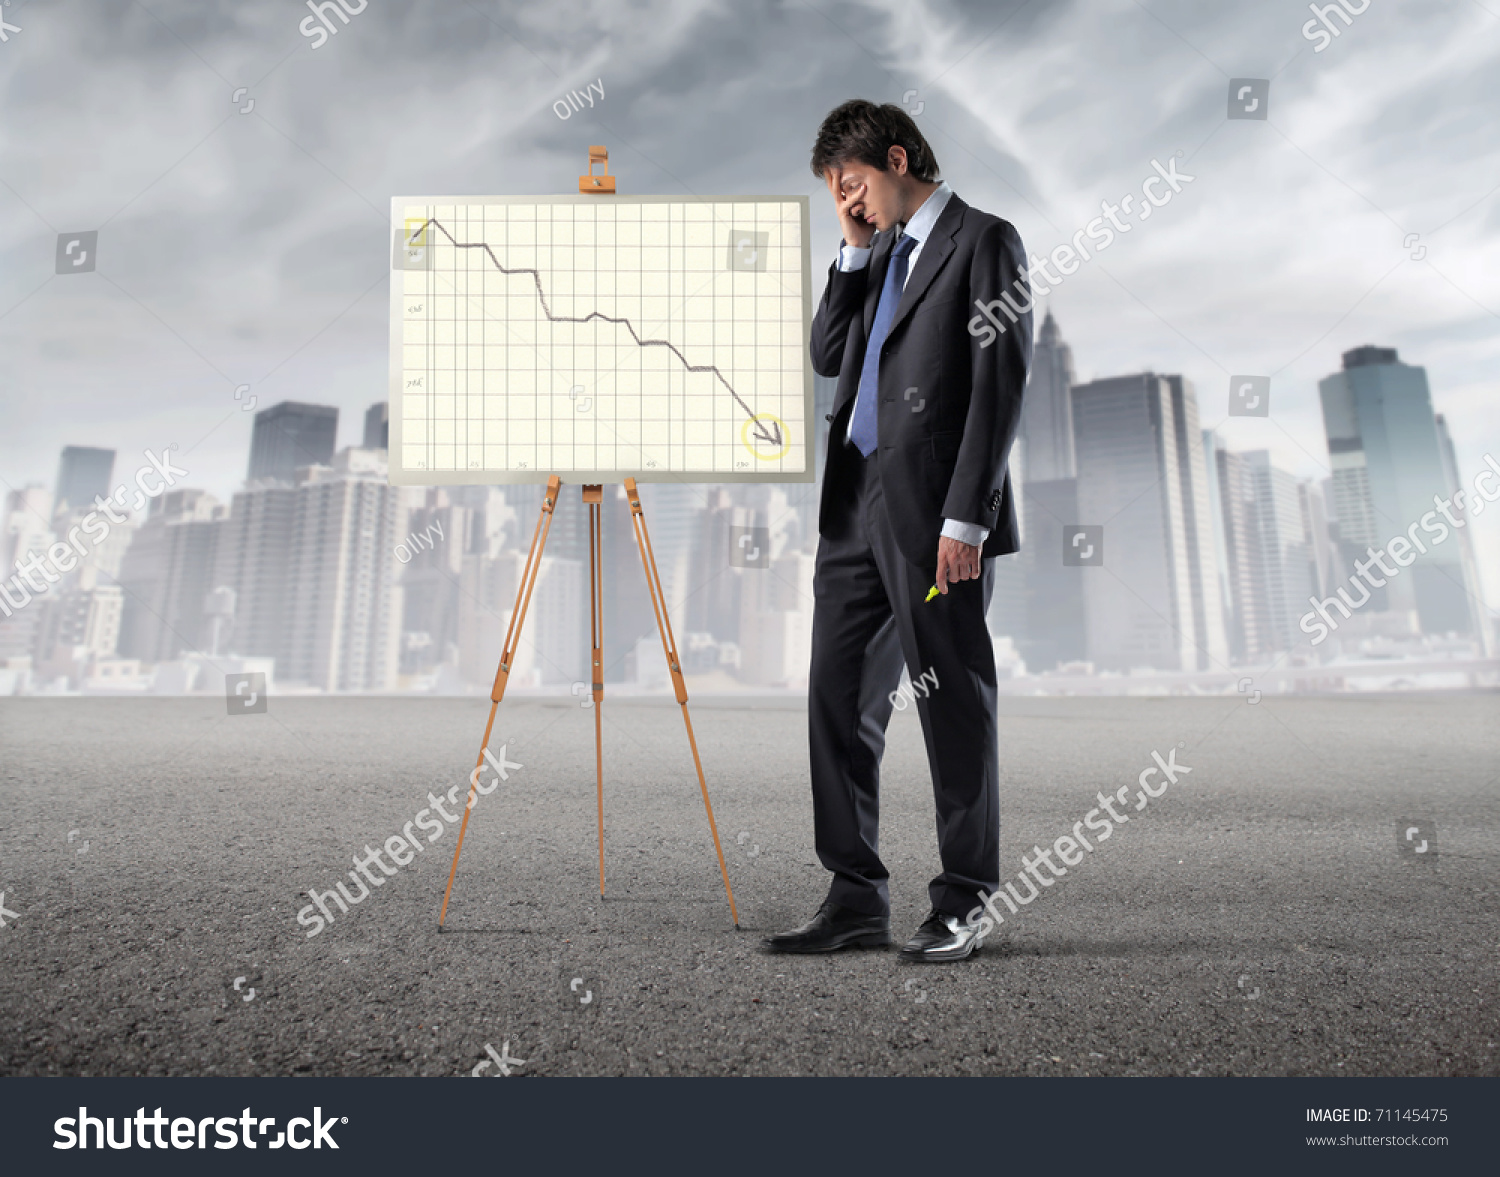 Sad Businessman Standing Beside A Graphic With Negative